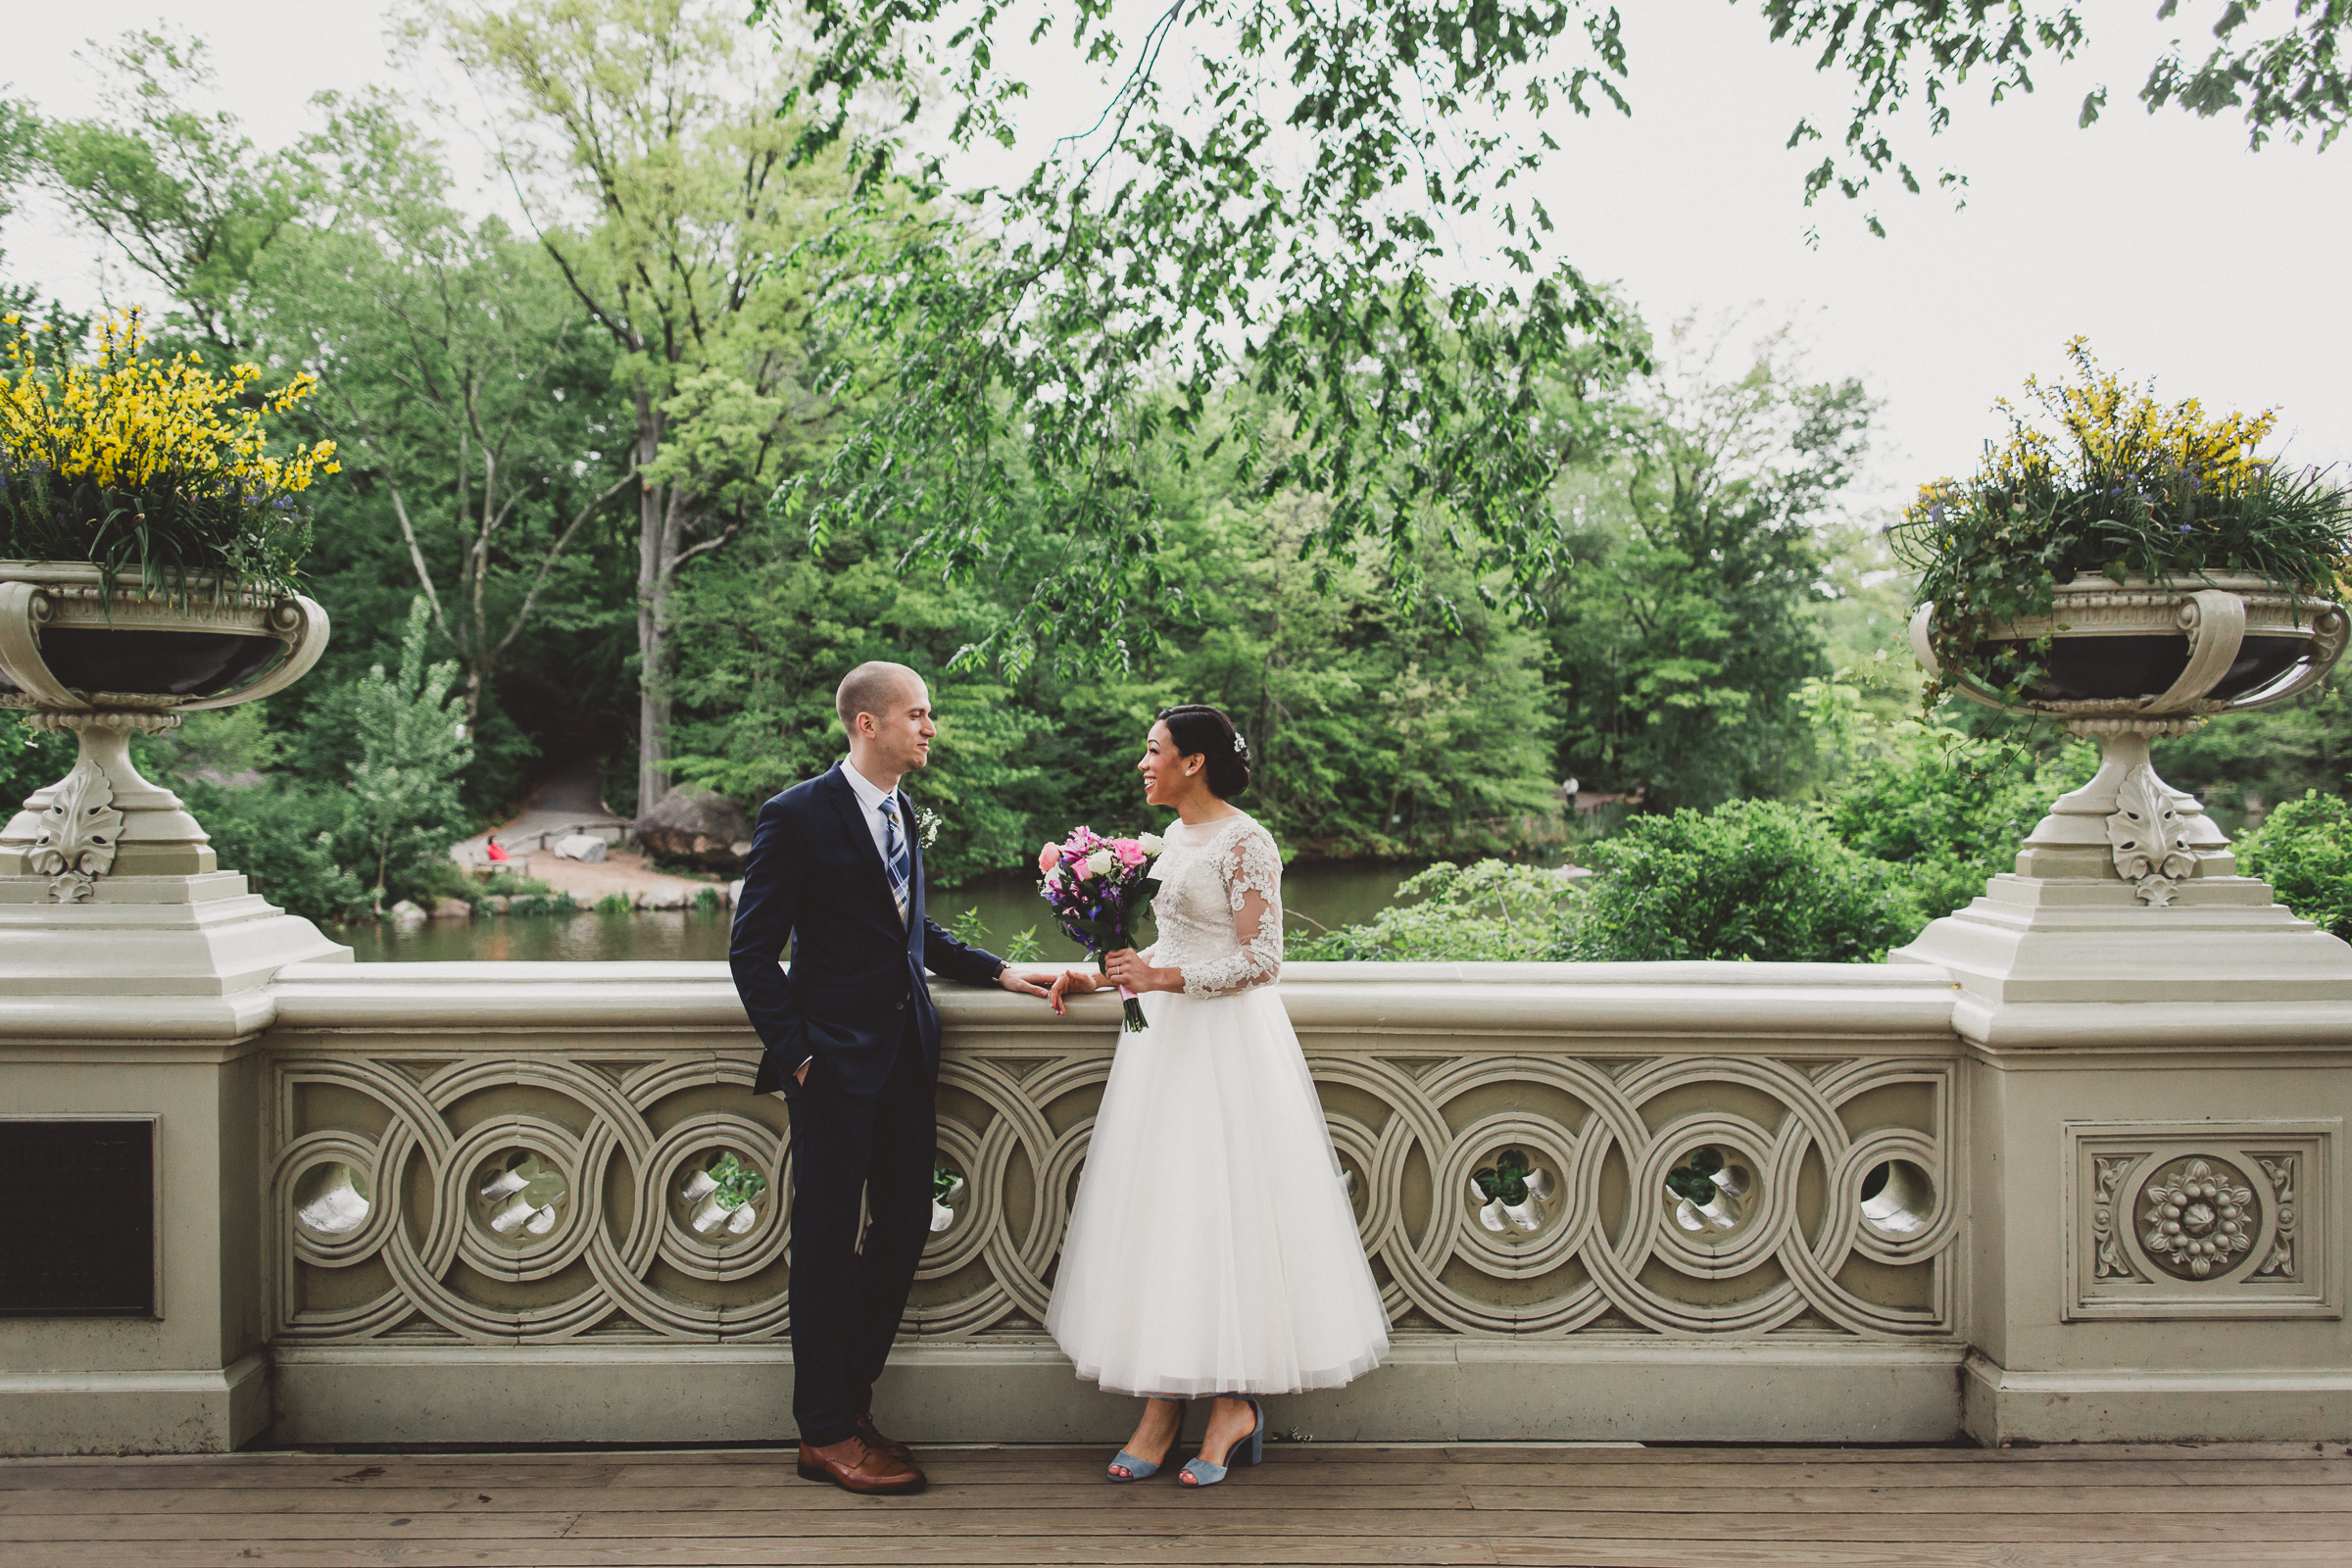 Wagner-Cove-Central-Park-Elopement-New-York-Documentary-Wedding-Photographer-20.jpg